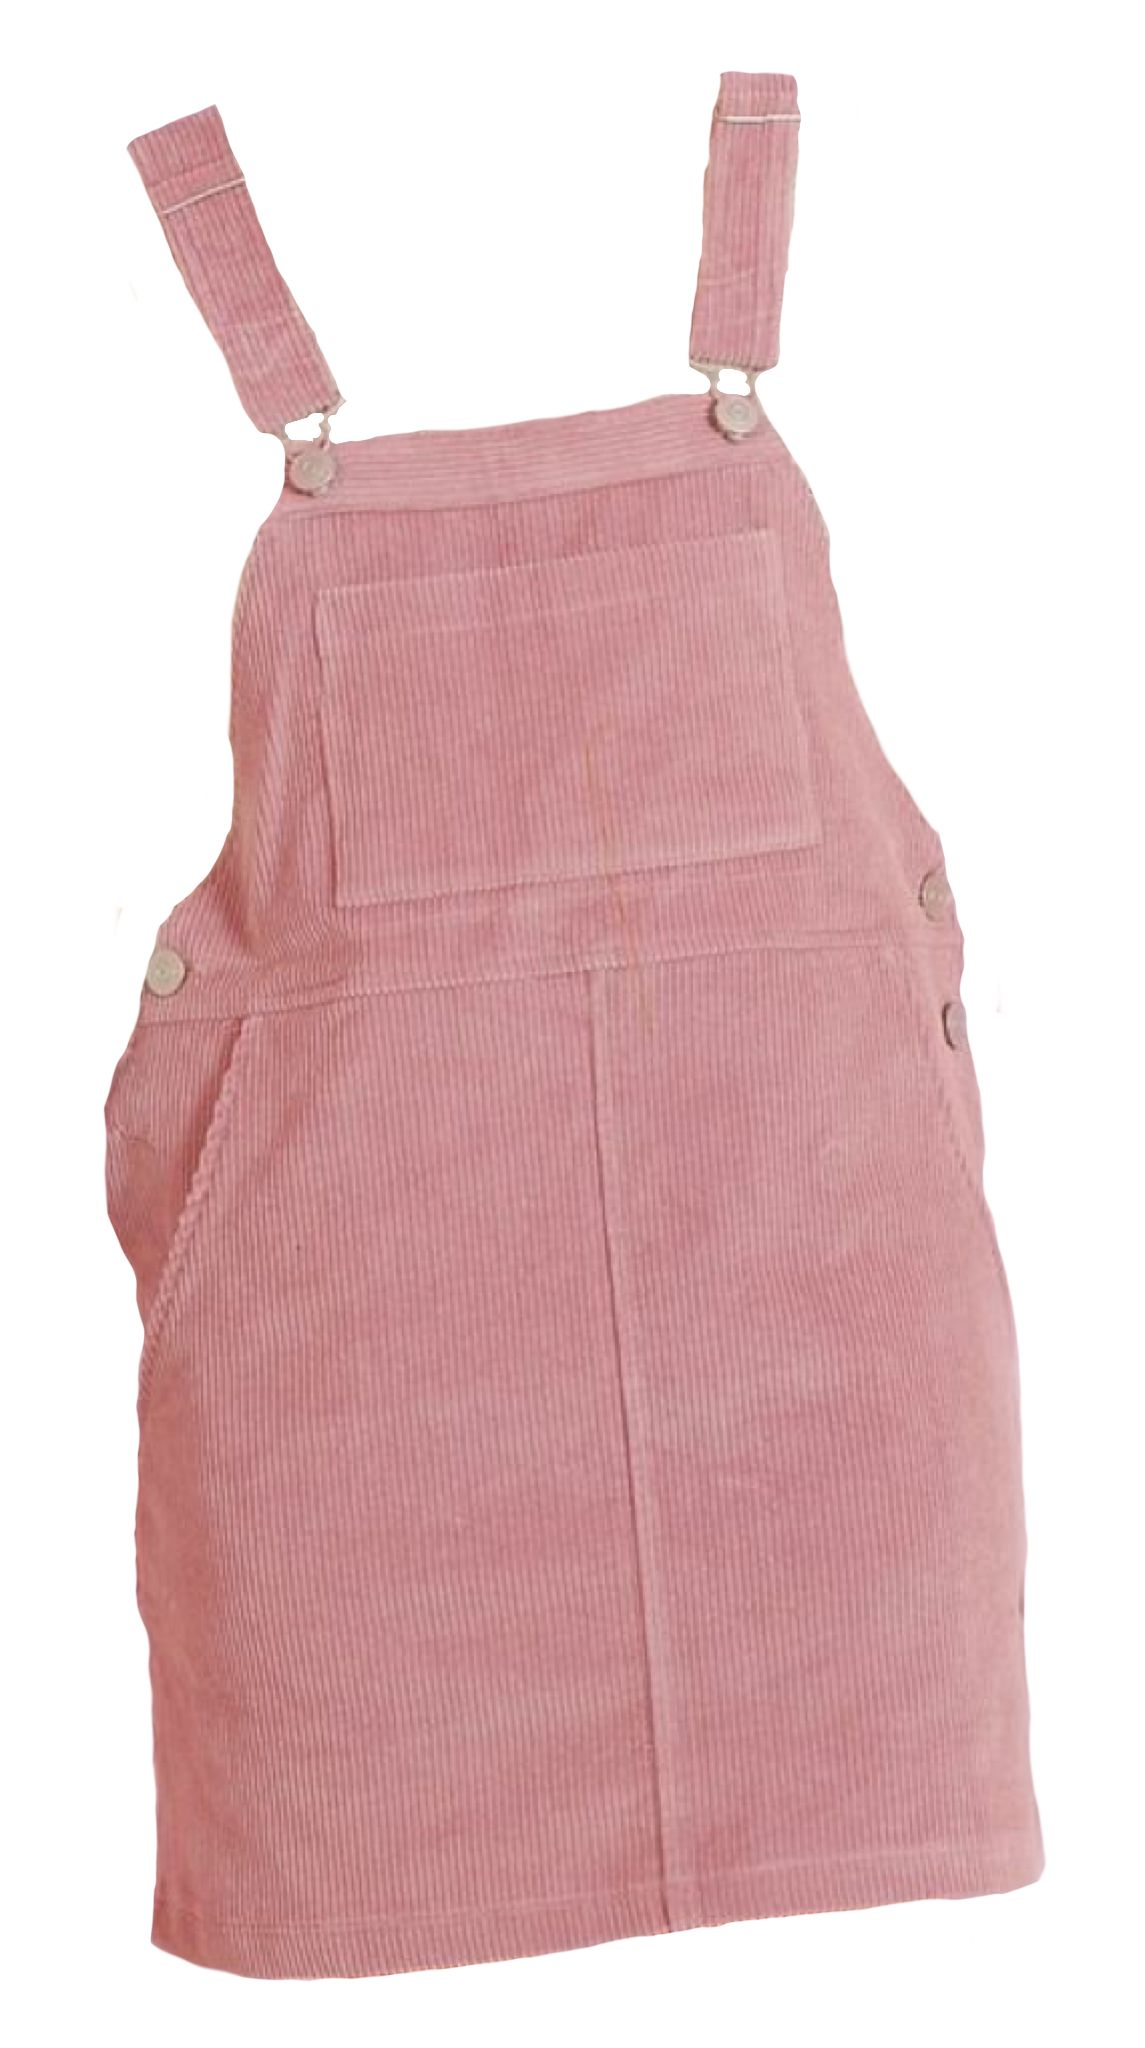 Pink Pinafore Corduroy Polyvore Png Overall Dress Fashion Outfits Pink Outfits Dress Png